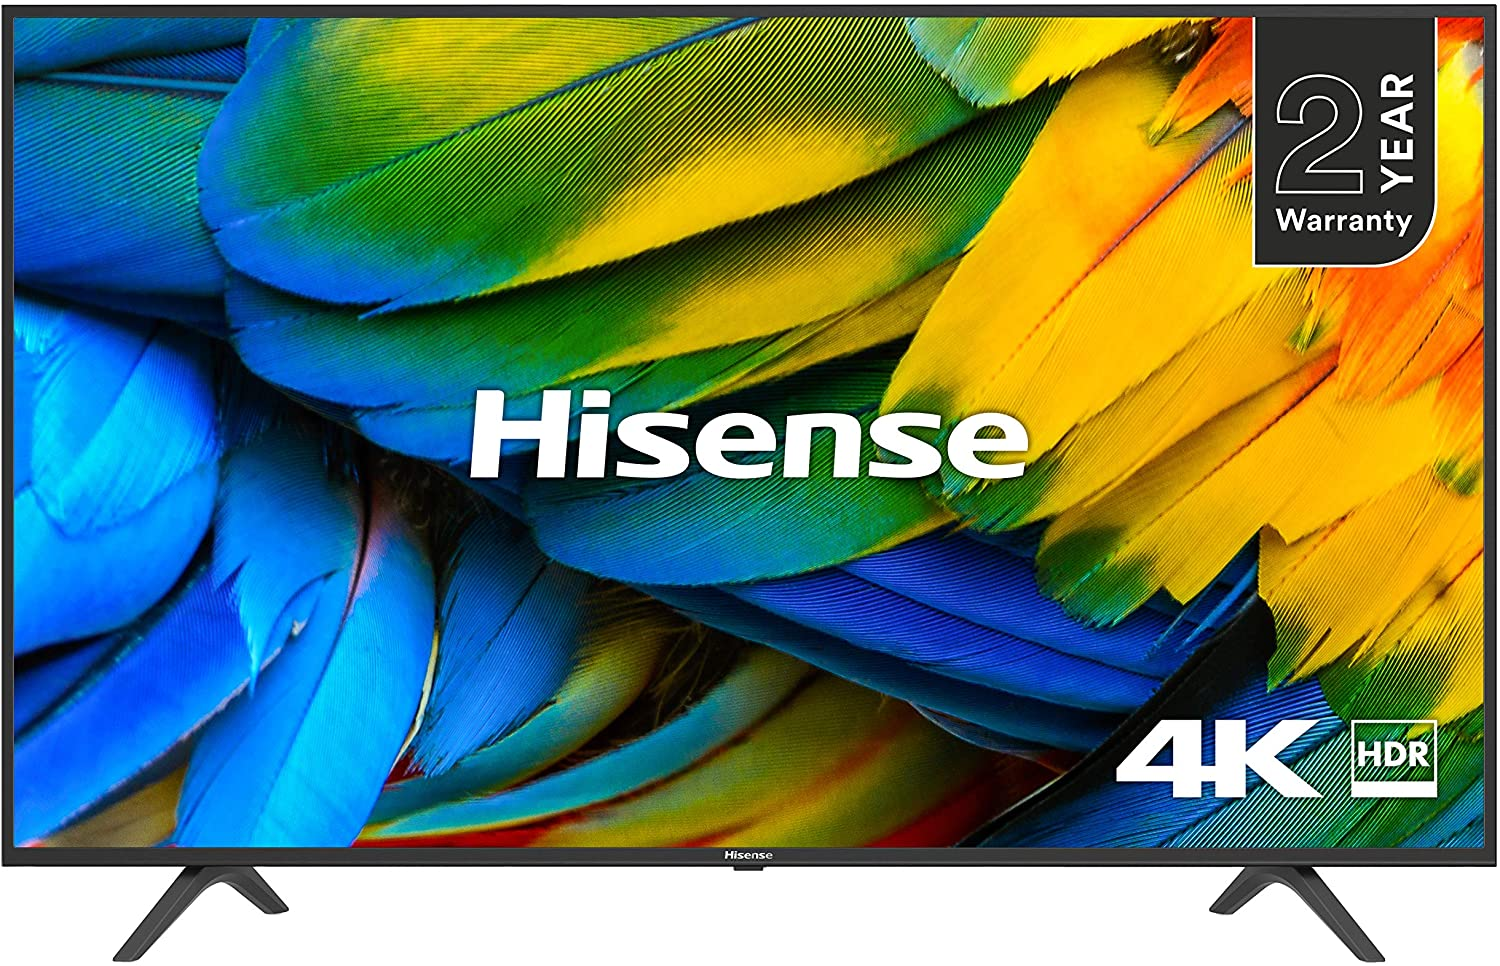 Hisense H43B7100UK 43-Inch 4K UHD Smart TV with Freeview Play